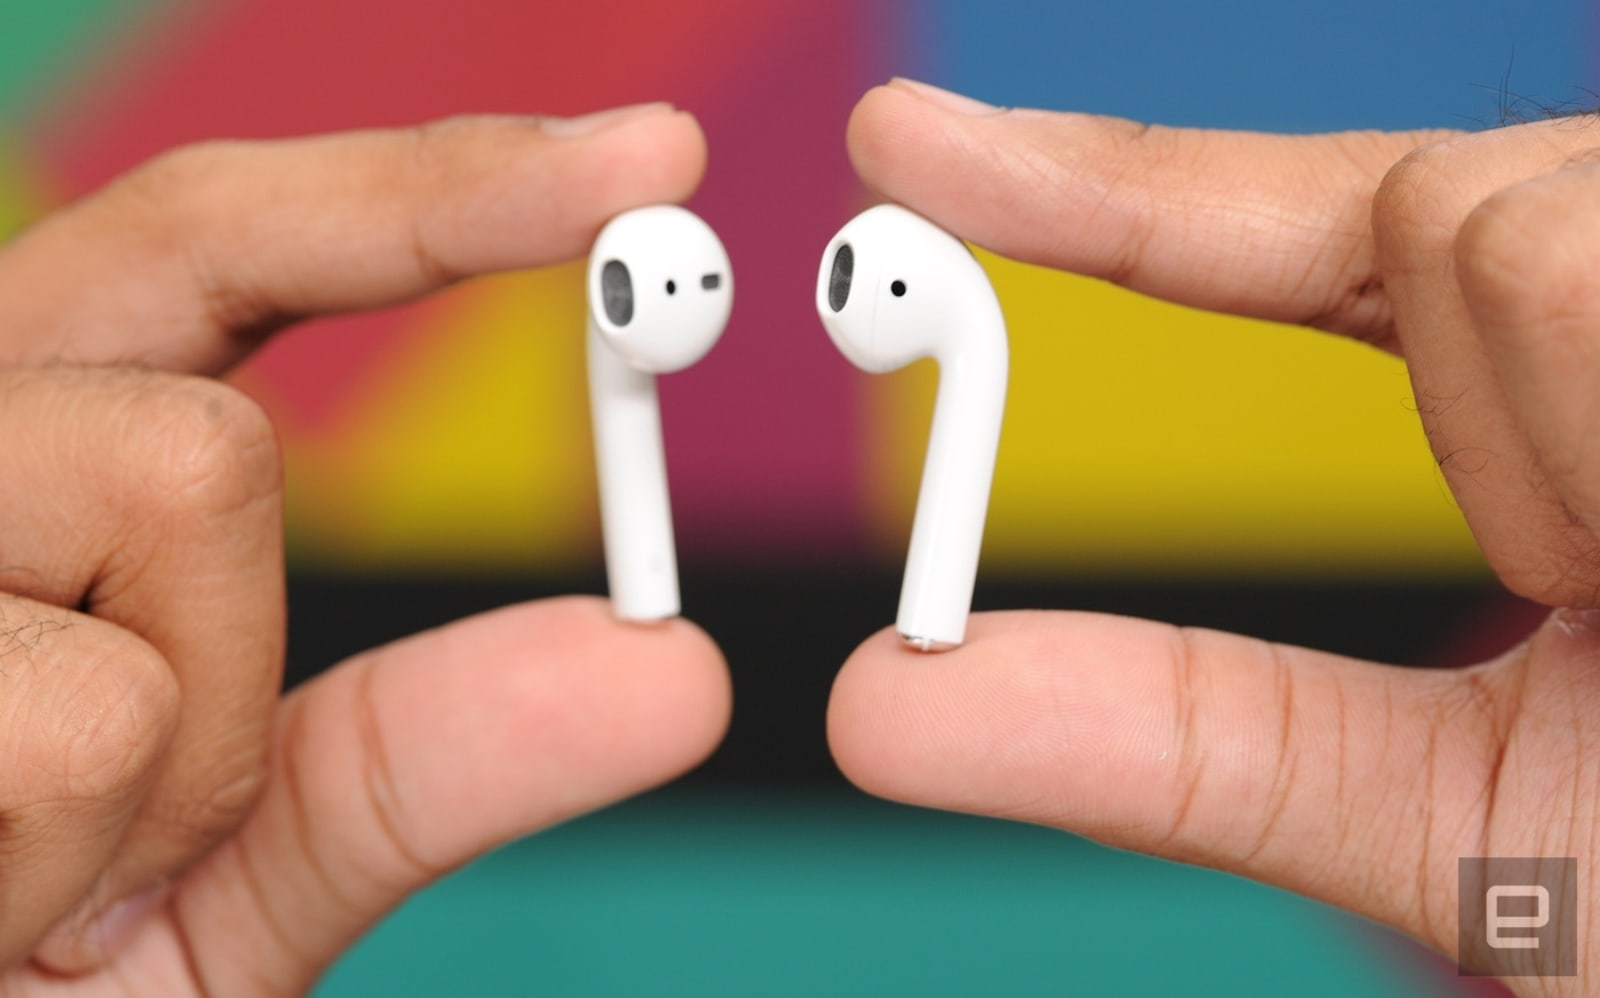 Apple AirPods are still the best-selling true wireless earbuds